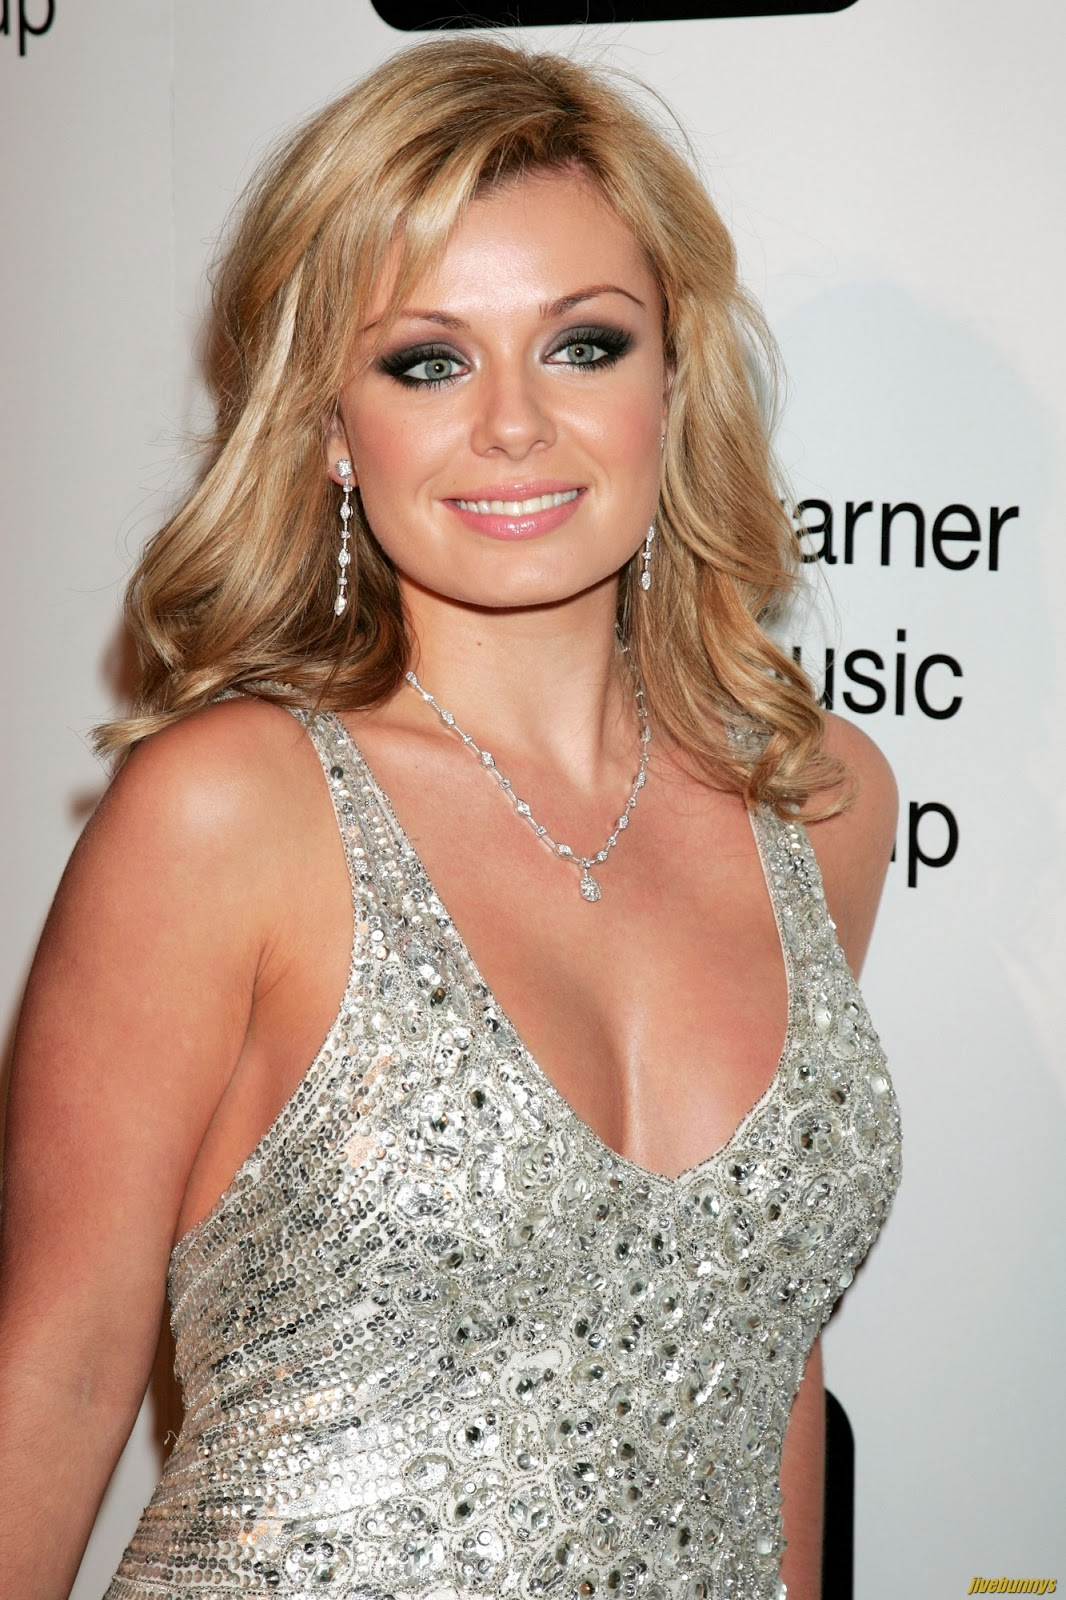 Jivebunnys Female Celebrity Picture Gallery: Katherine Jenkins Hot ... Beyonce Knowles